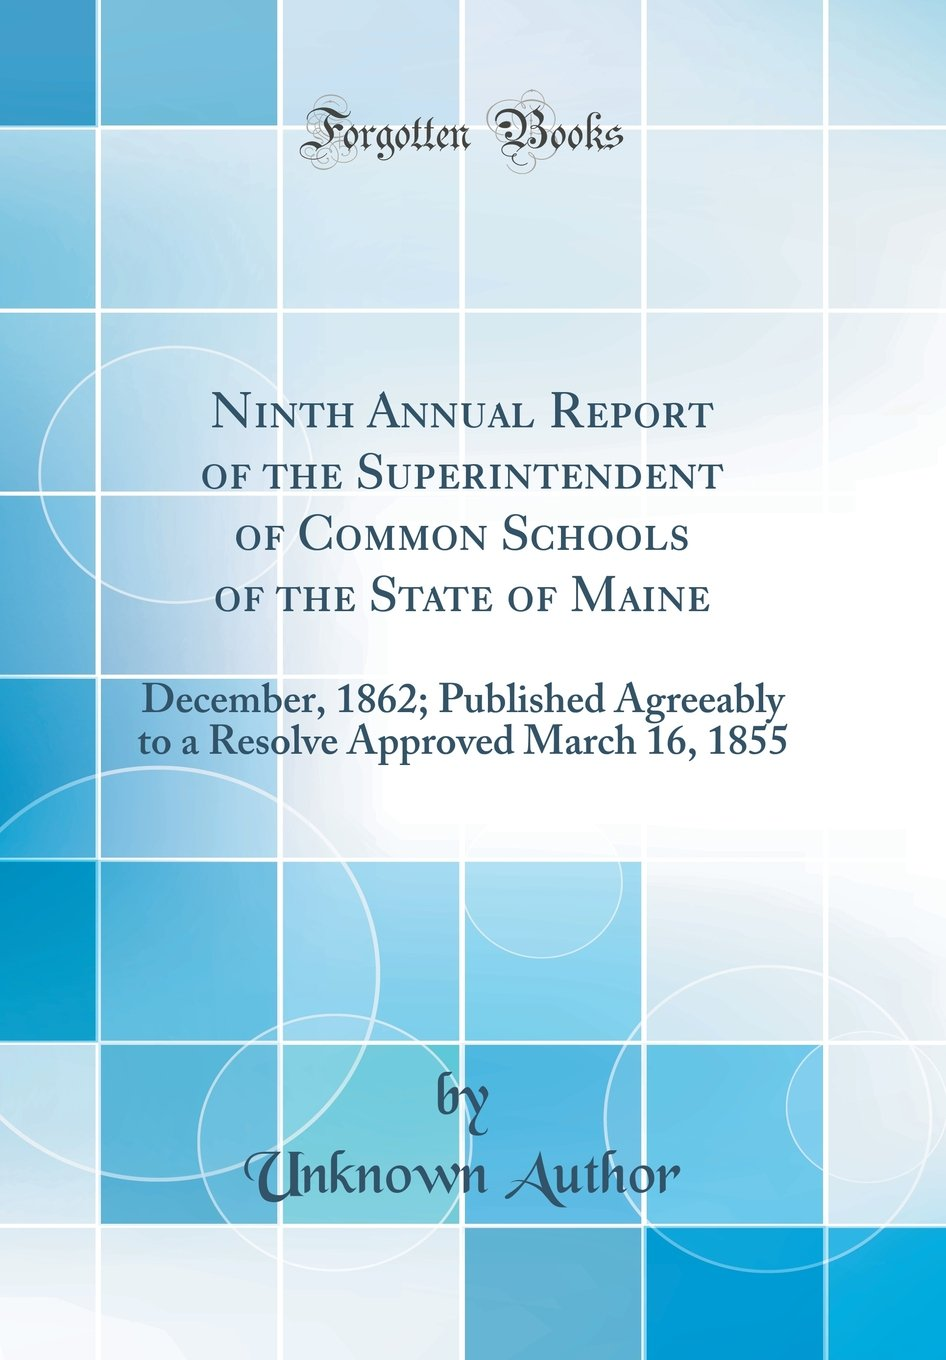 Ninth Annual Report of the Superintendent of Common Schools of the State of Maine: December, 1862; Published Agreeably to a Resolve Approved March 16, 1855 (Classic Reprint) pdf